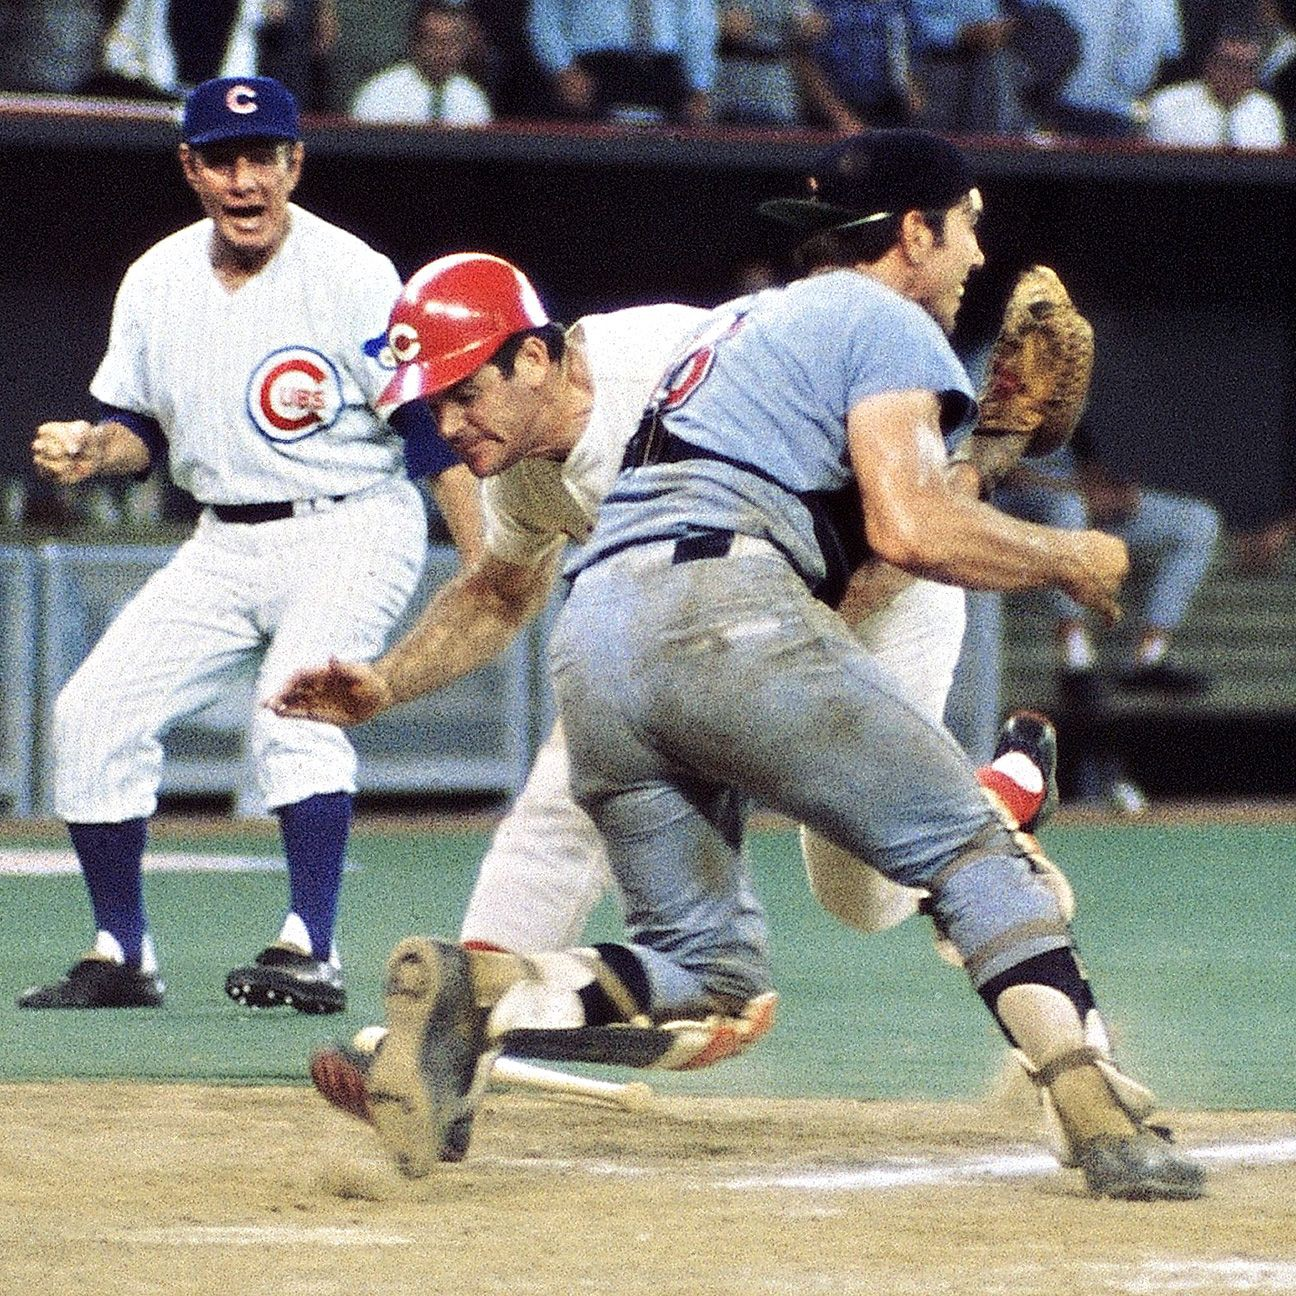 50 years ago tonight: Pete Rose blew up Ray Fosse to win the All-Star Game  | by Sal Maiorana | Top Level Sports | Medium